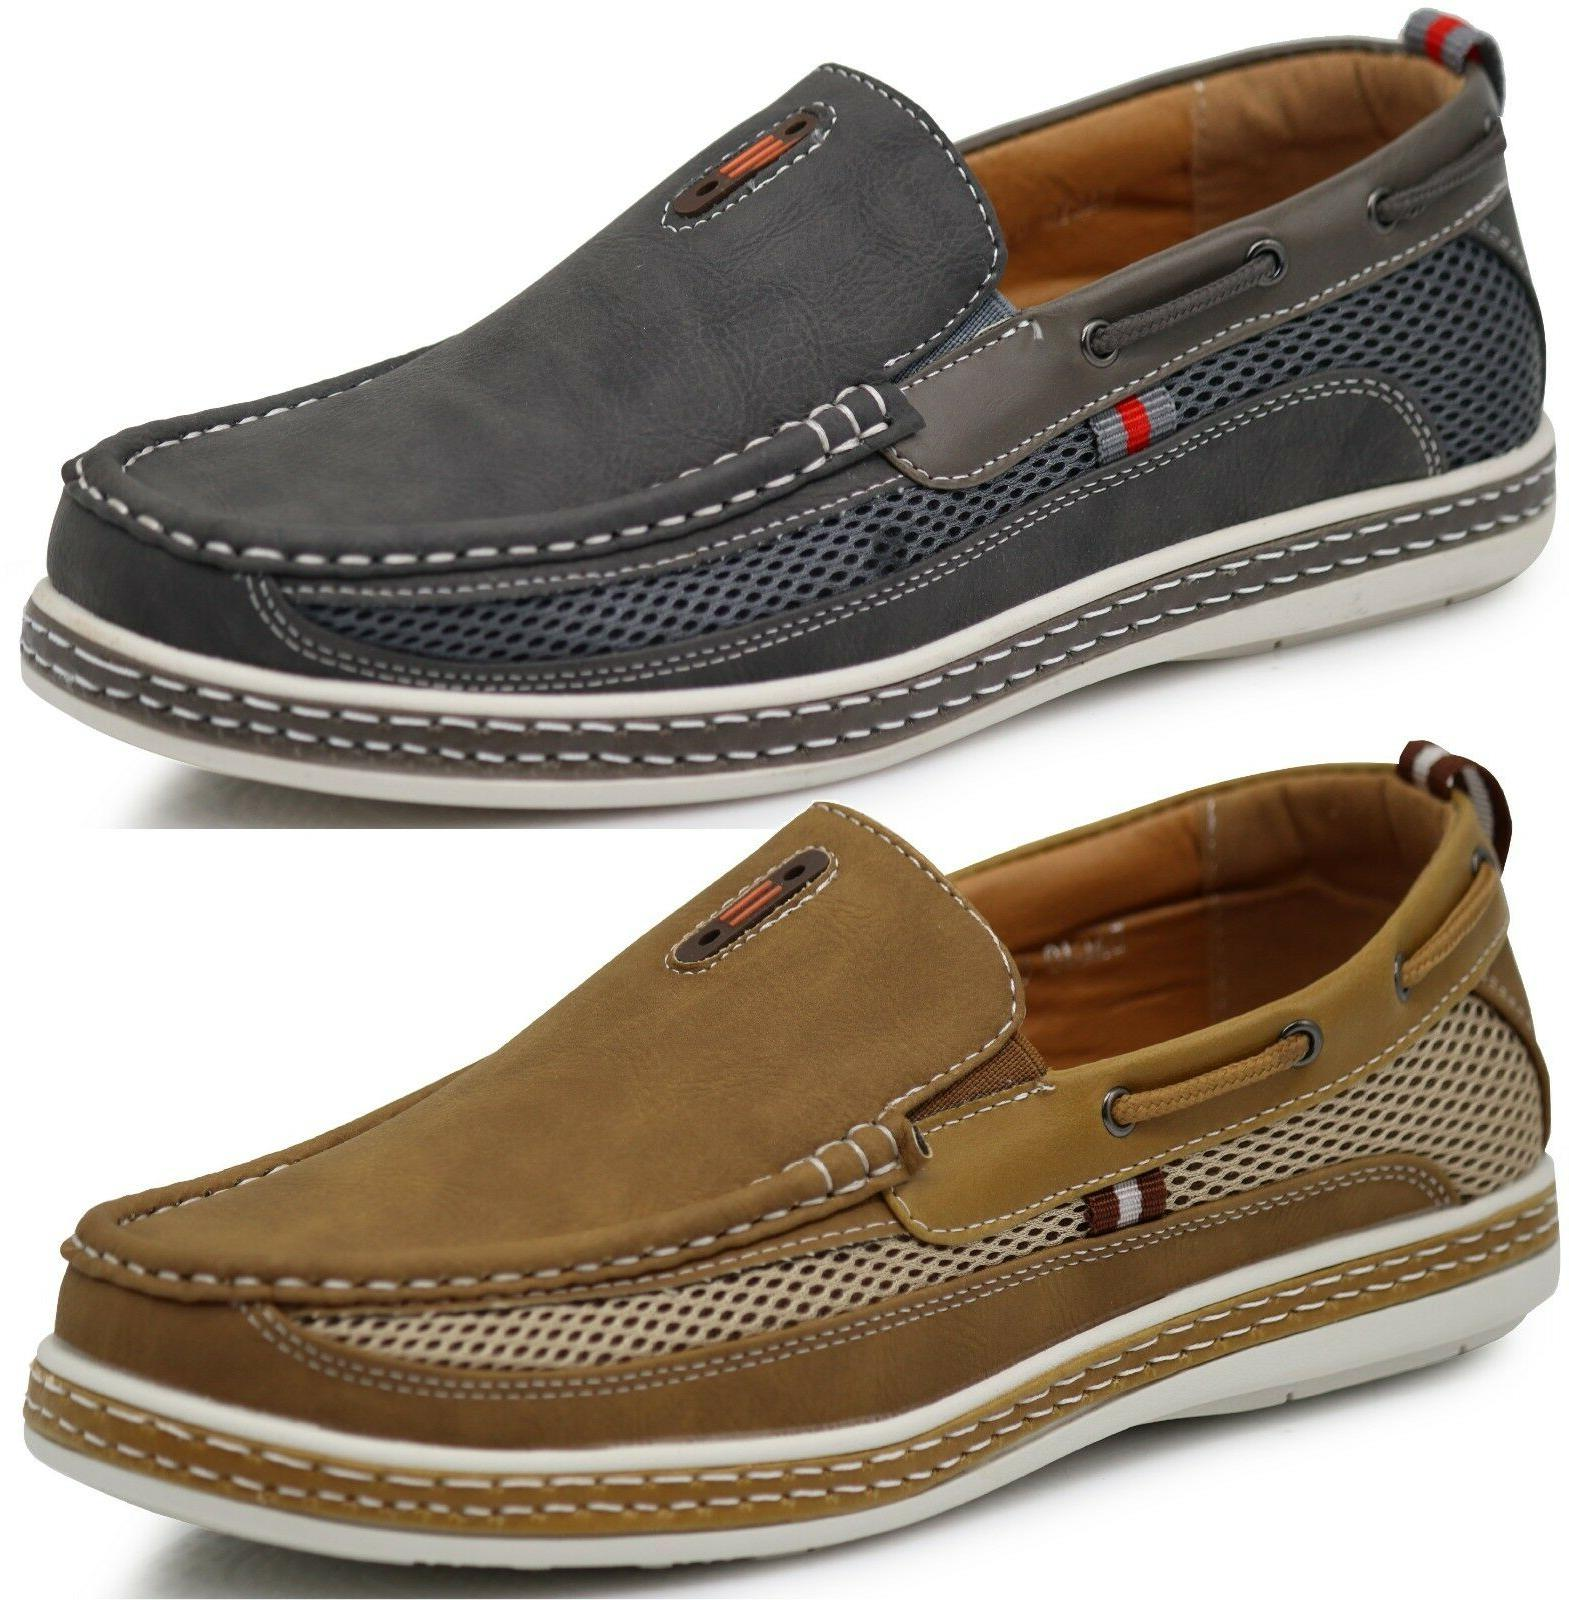 new men boat shoes driving moccasins slip